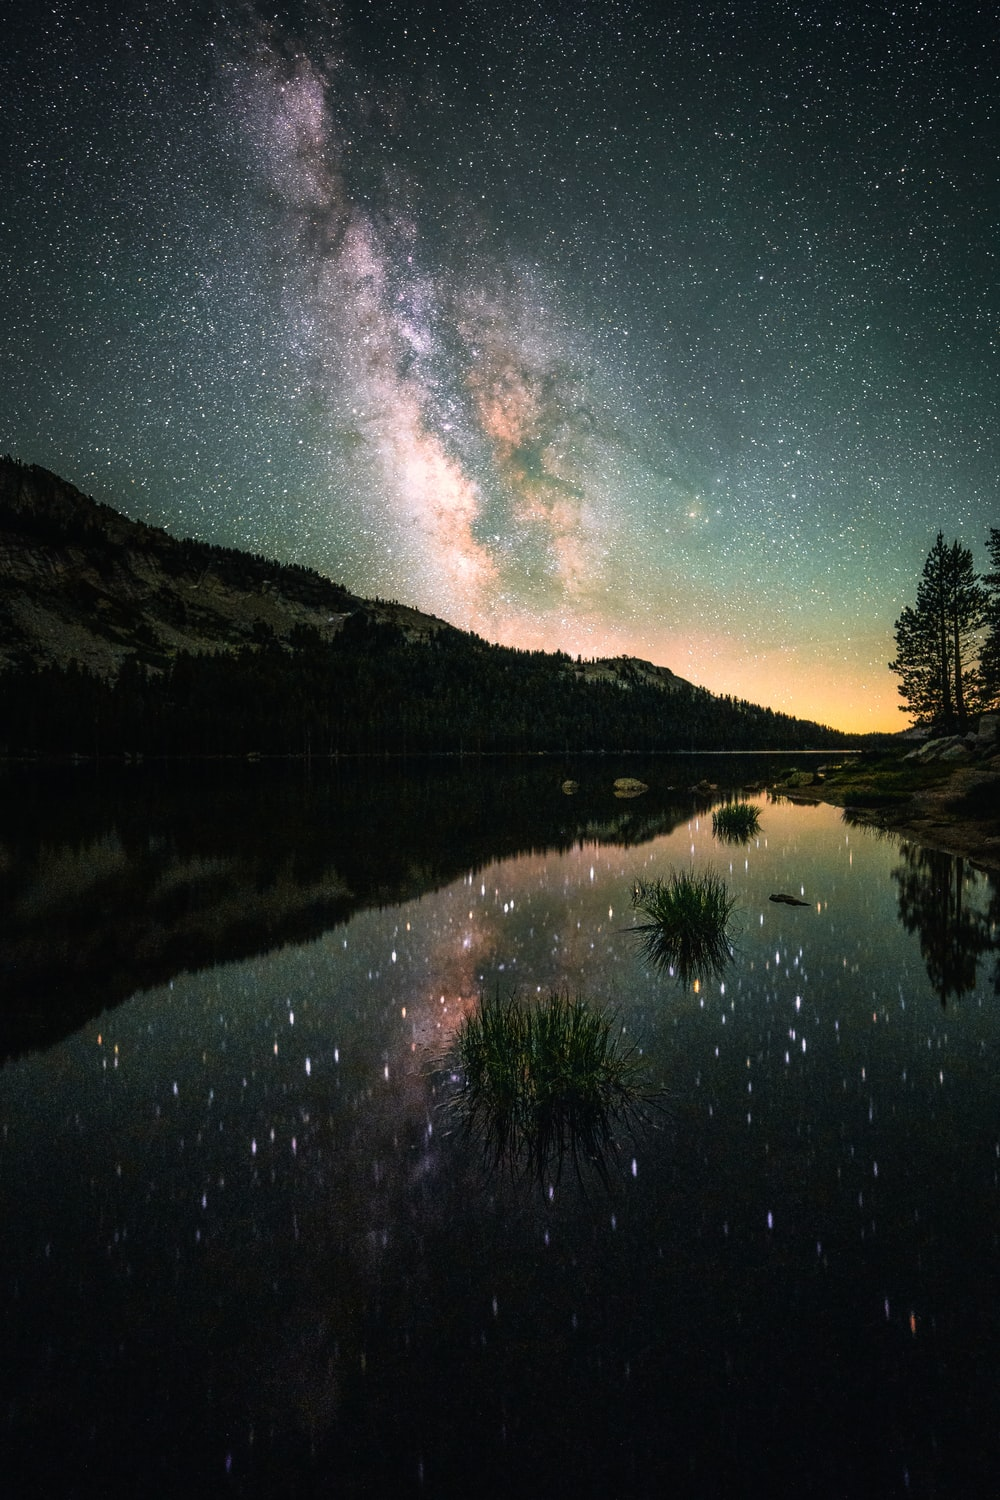 green trees near lake under blue sky with stars during night time